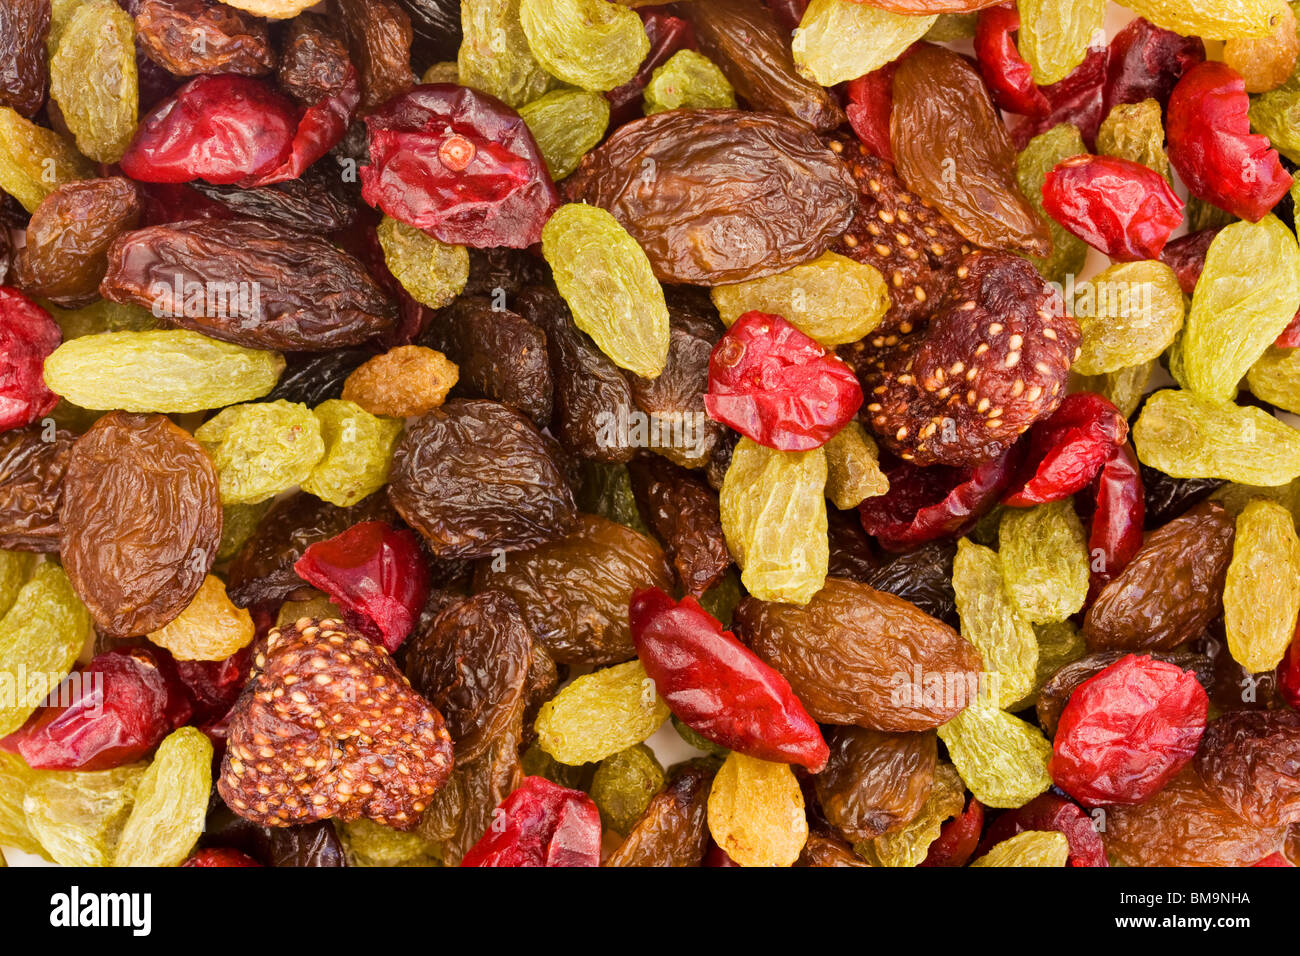 background of assorted dried fruit mix - Stock Image